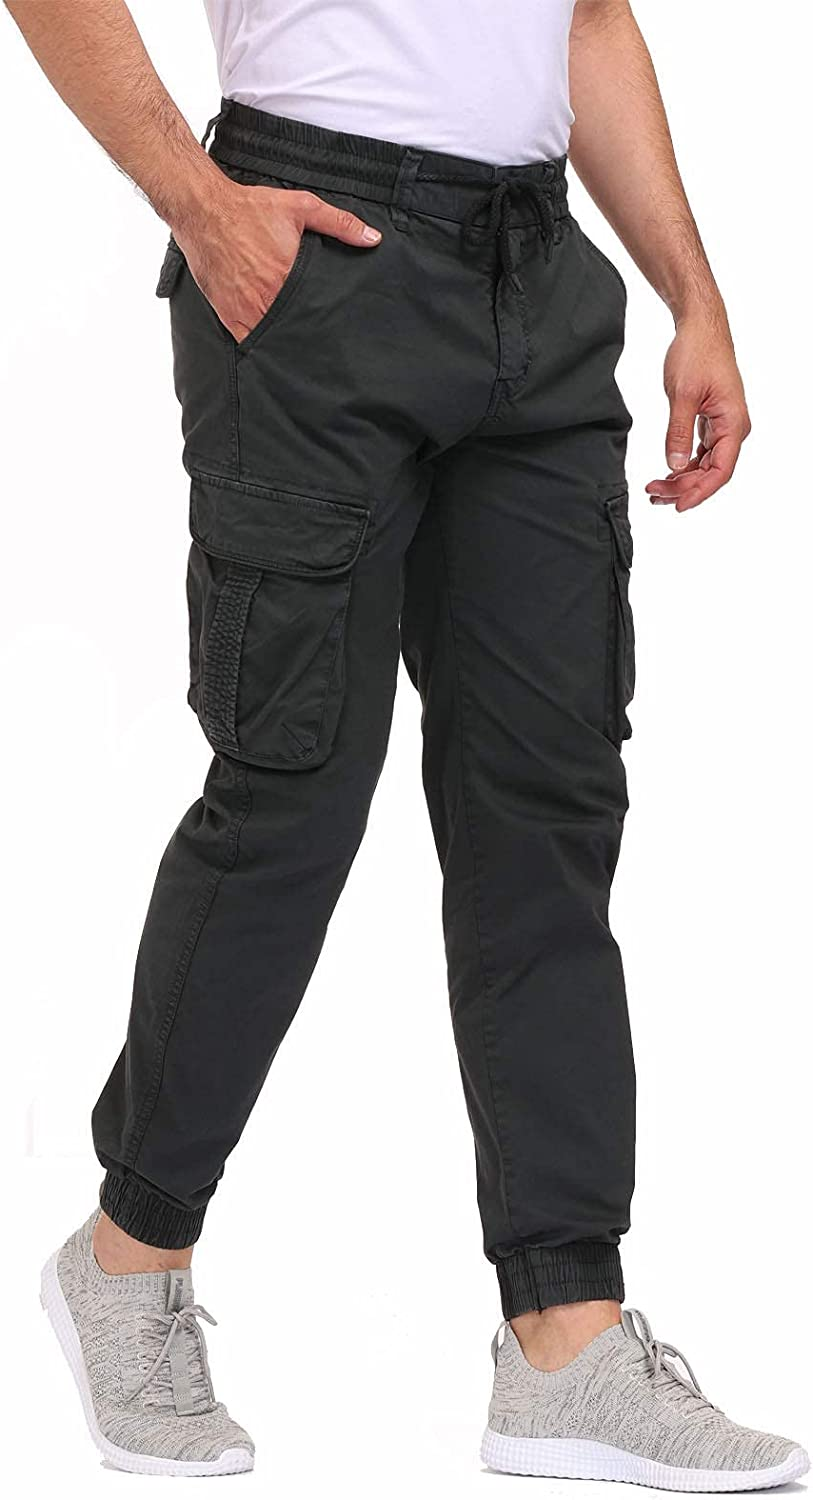 LEPOAR Men's Regular Tapered Cargo Pants Slim Fit Chino Joggers Work Trousers with Pockets